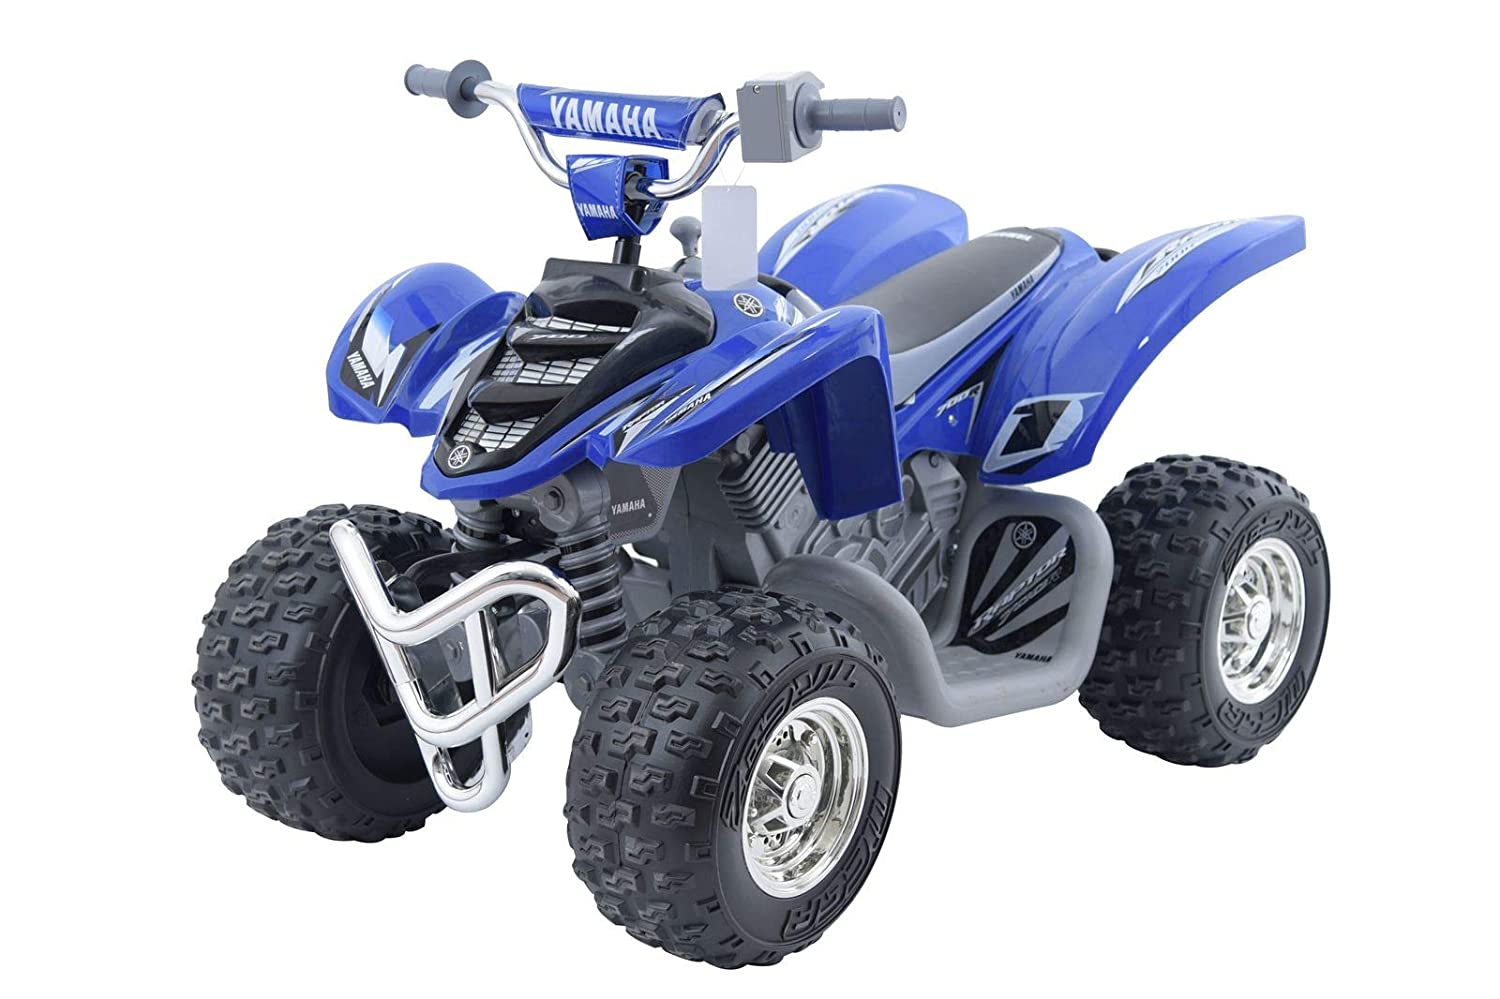 Yamaha Raptor Atv 12 Volt Battery Powered Ride On Blue Rhino Box Wiring Diagram Sports Outdoors